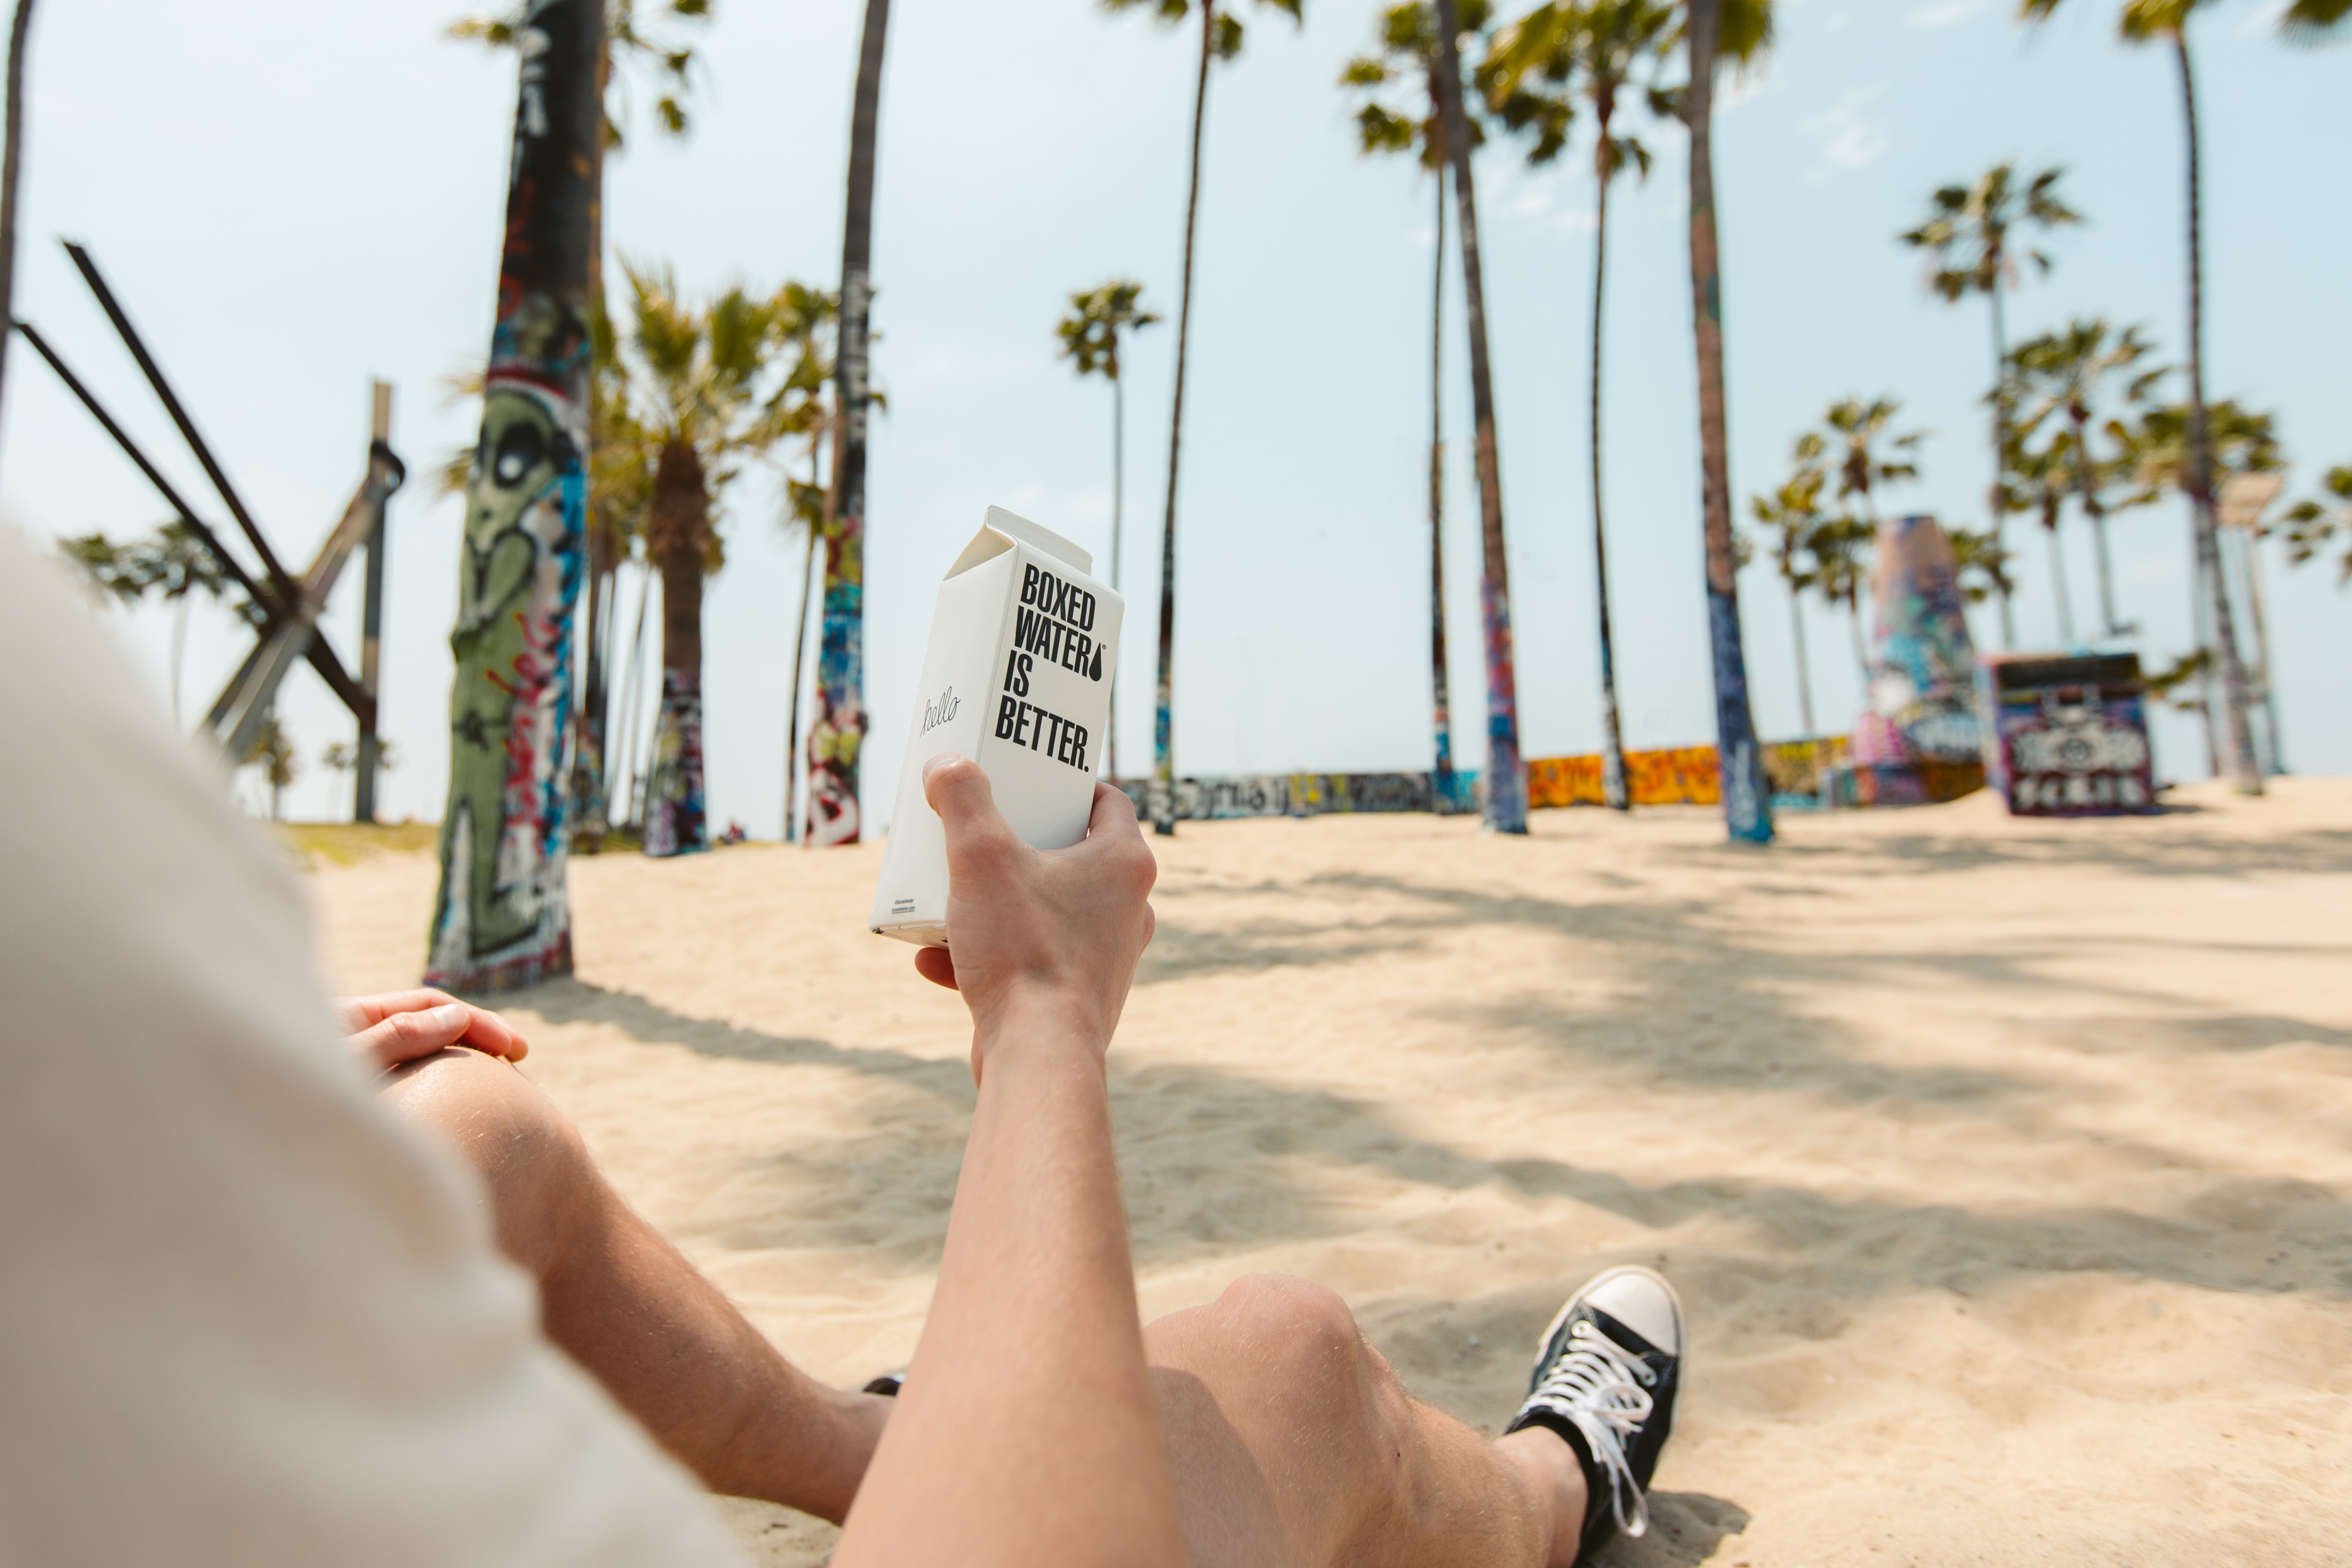 Person sitting on a beach with a box of Boxed Water Is Better